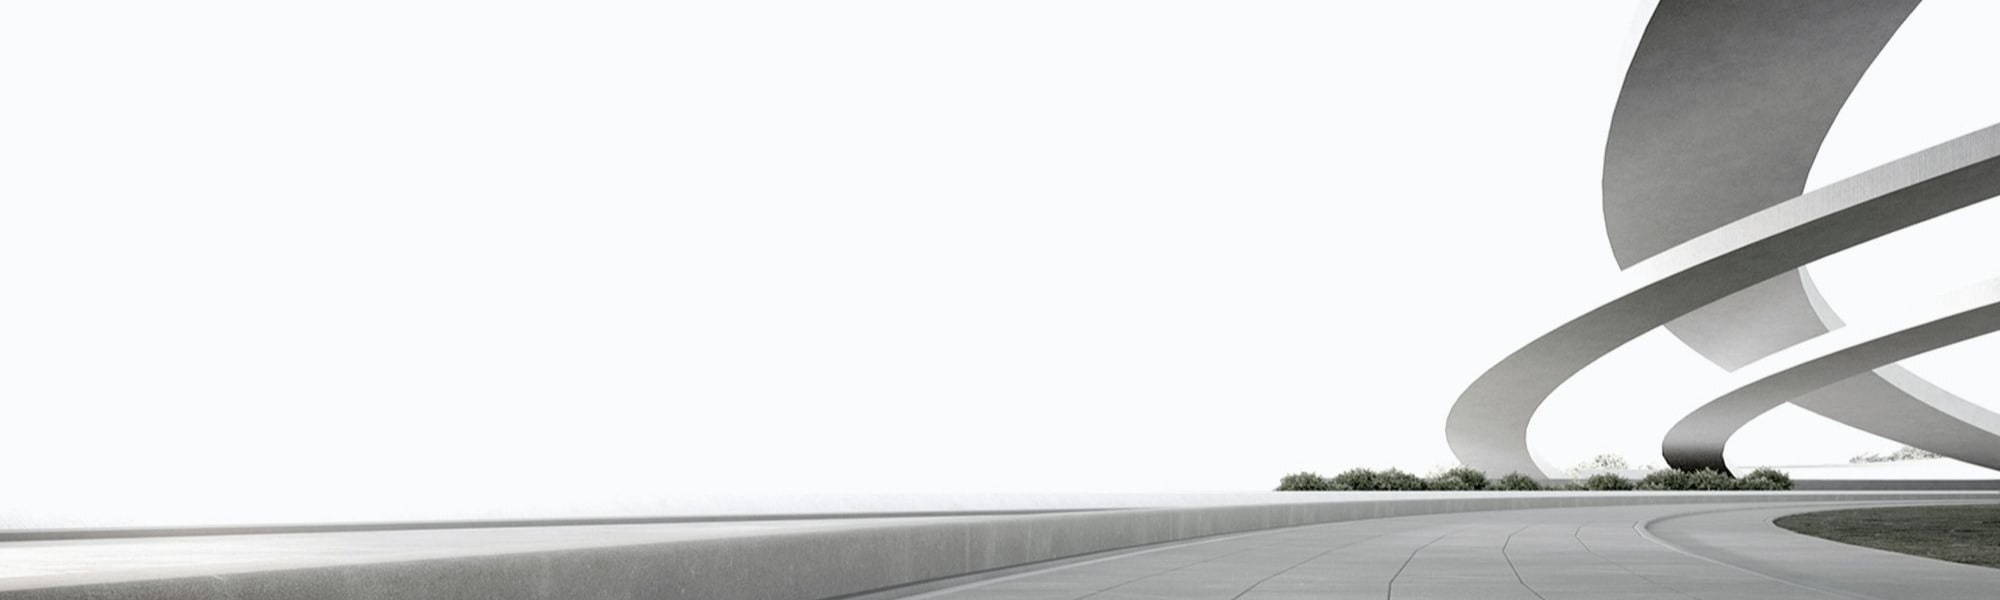 Banner image of a road and a bridge on a white background